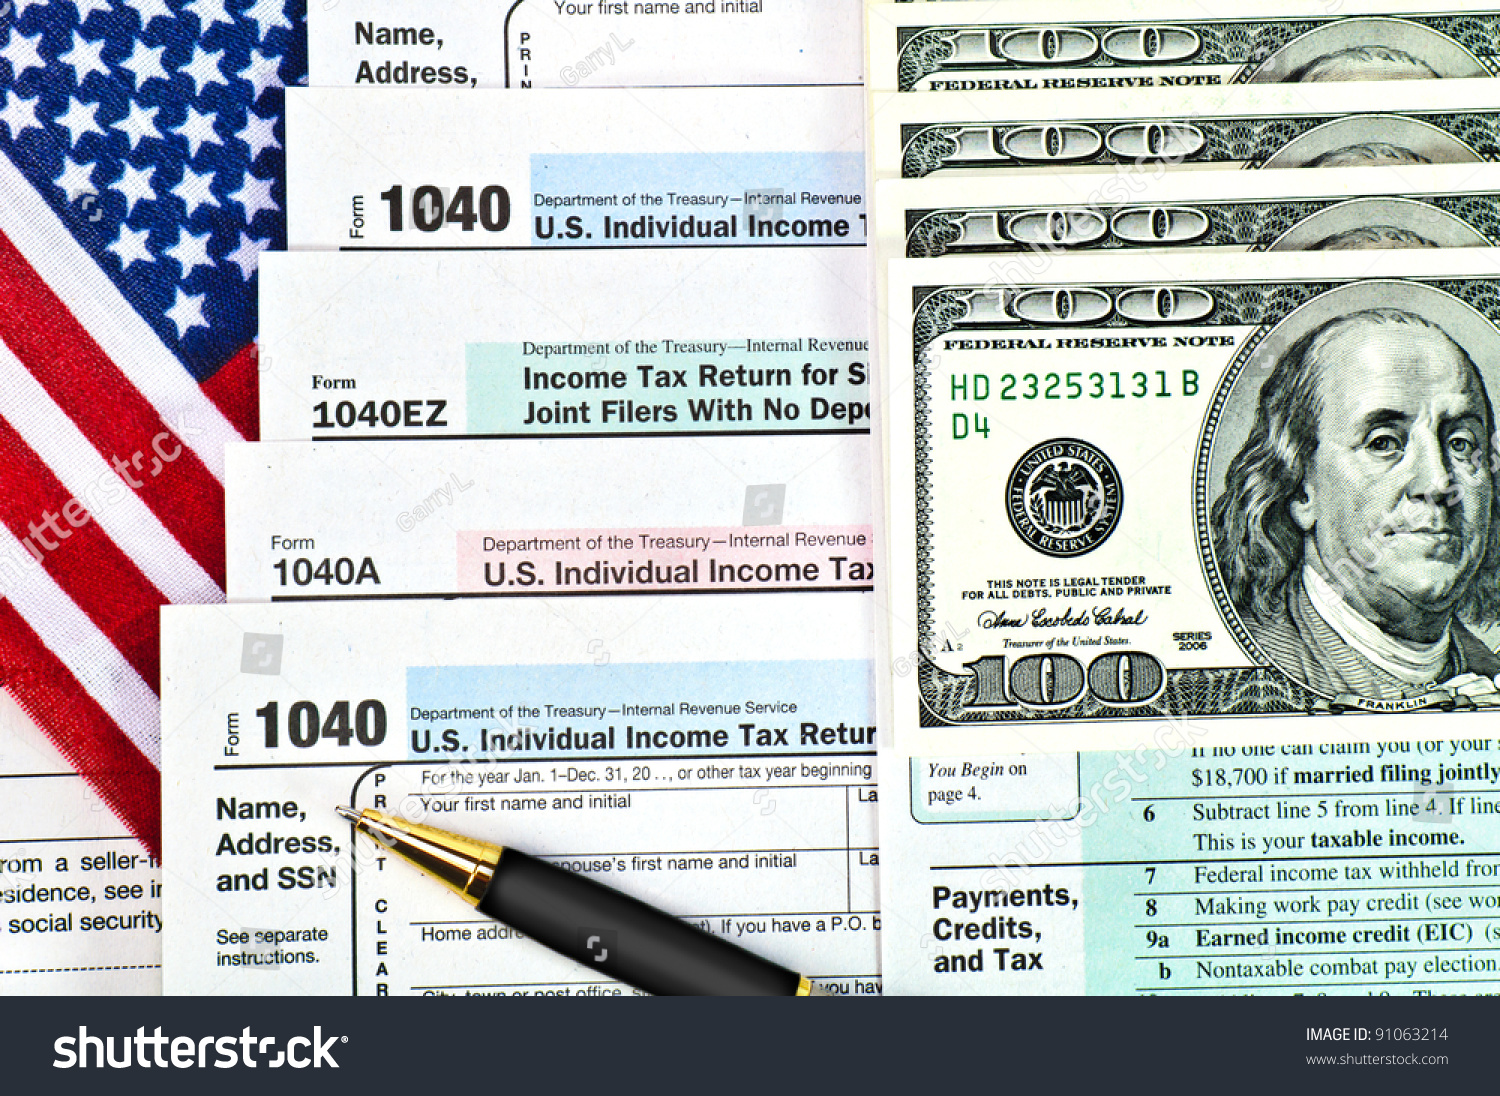 How to report non qualified stock options on taxes